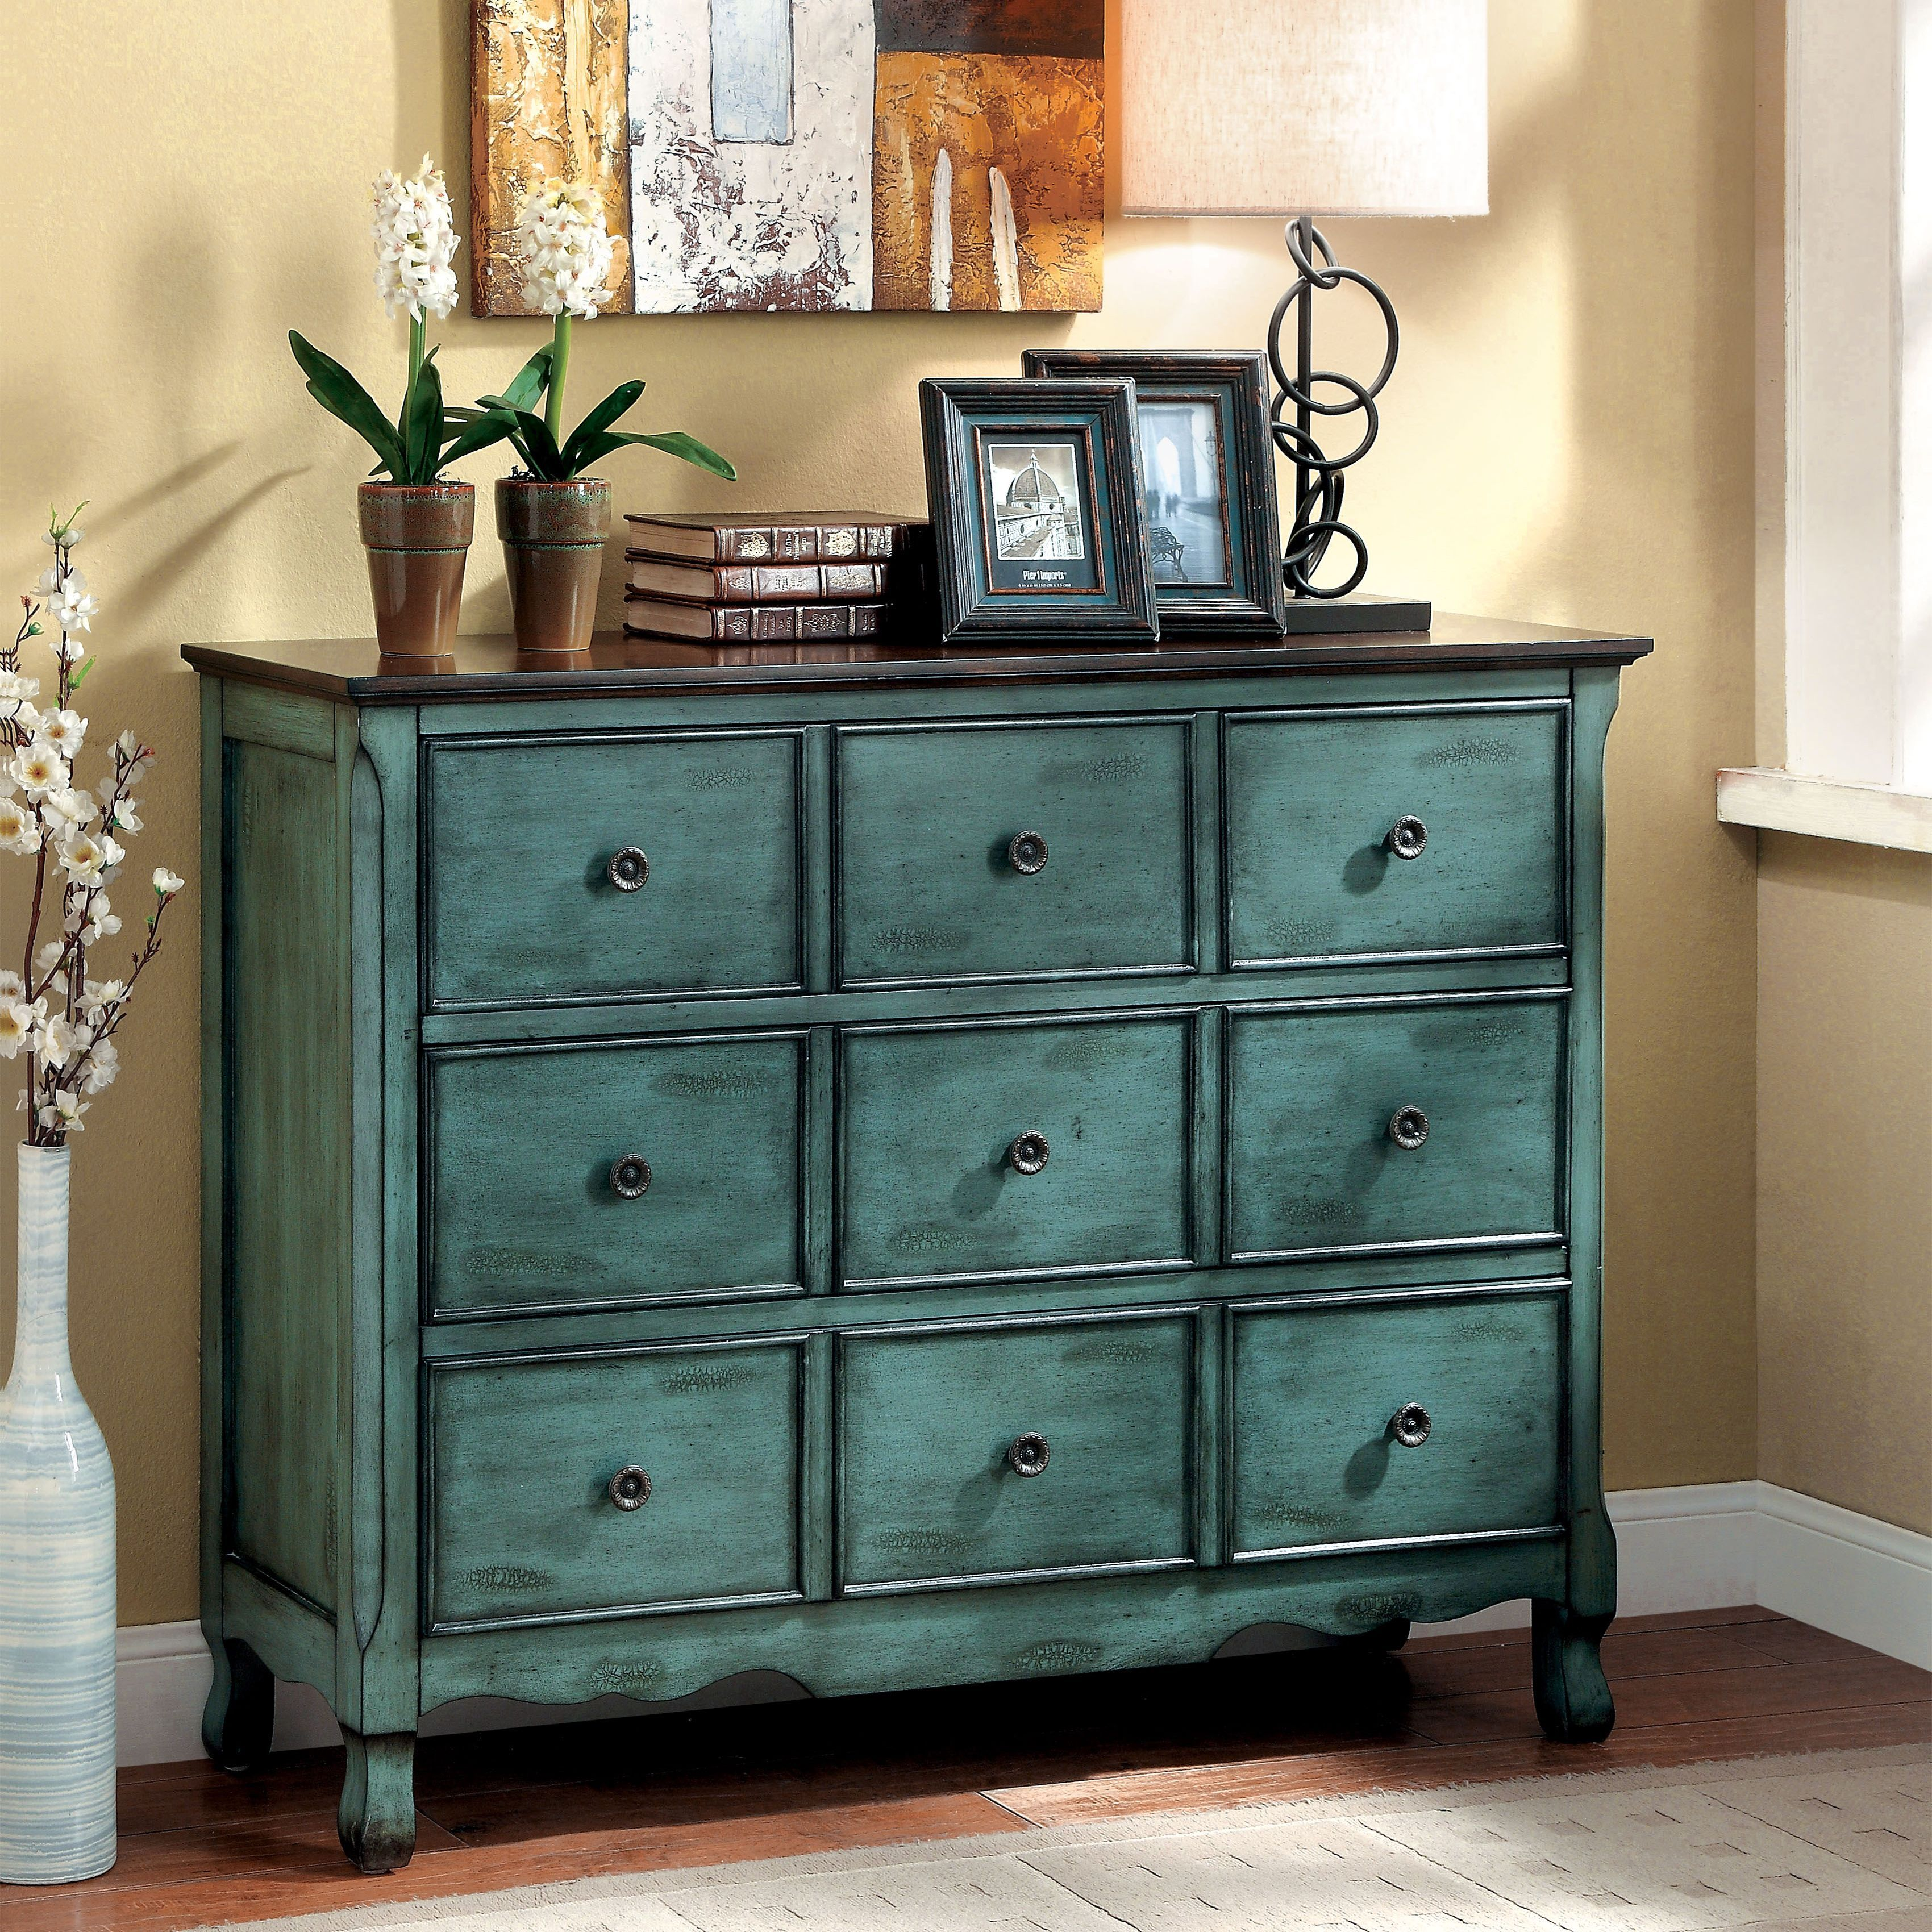 Place this beautiful vintage inspired chest in any hallway entryway or bedroom the three wide drawers are sure to be of use while hiding behind the